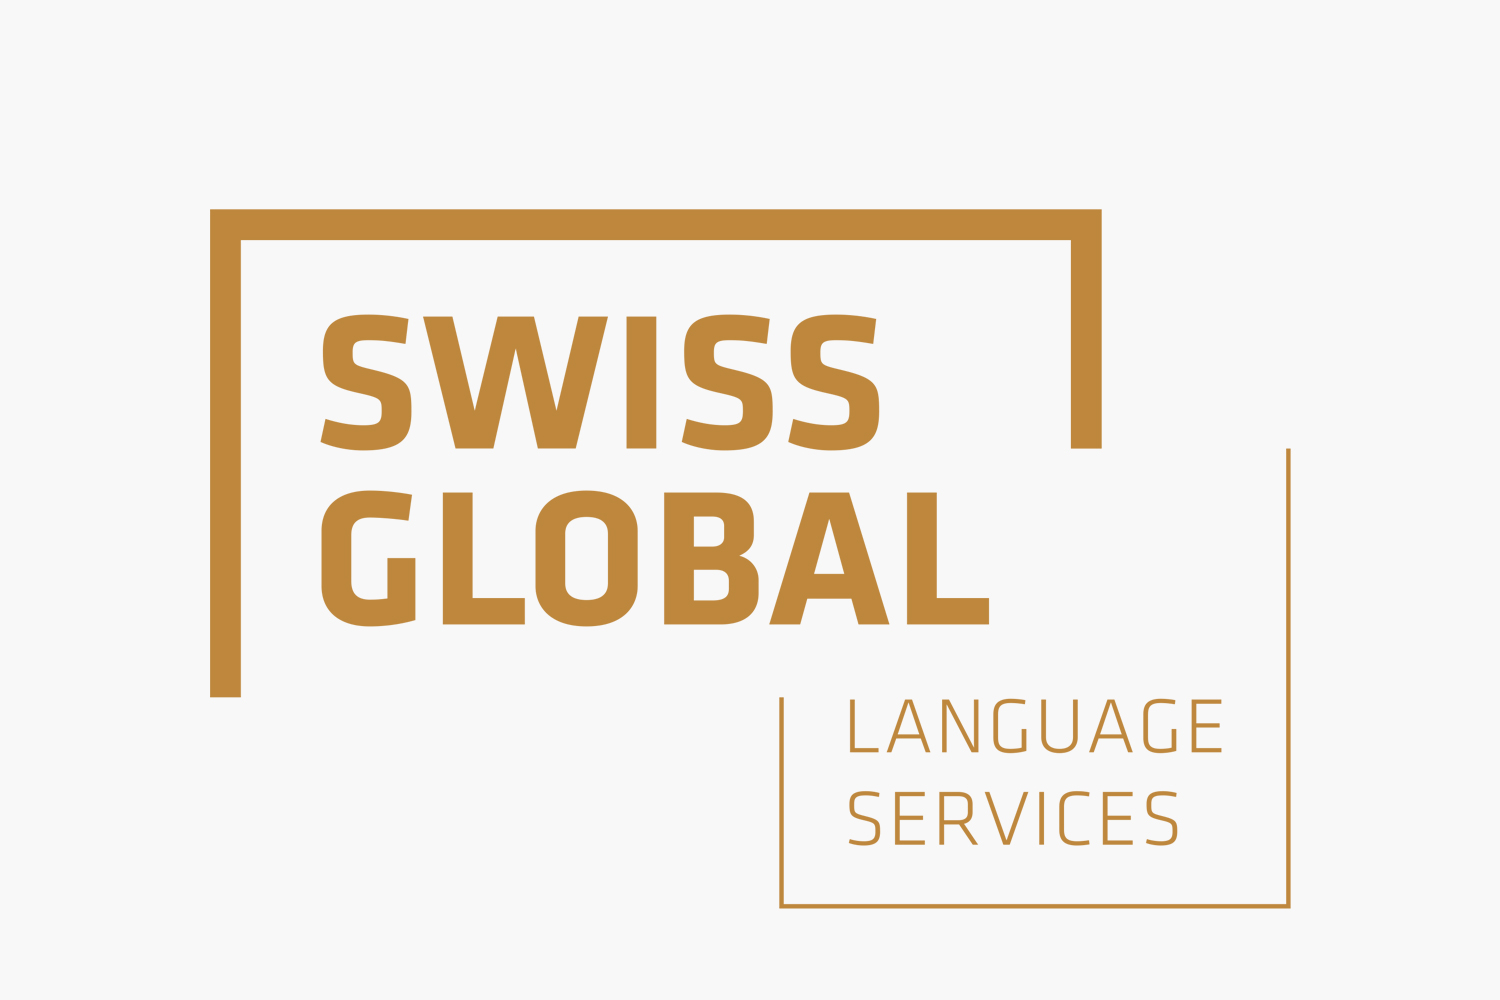 Online Marketing - Search engine optimization SEO, AdWords, website optimization, e-mail marketing and consulting for the translation agency SwissGlobal.